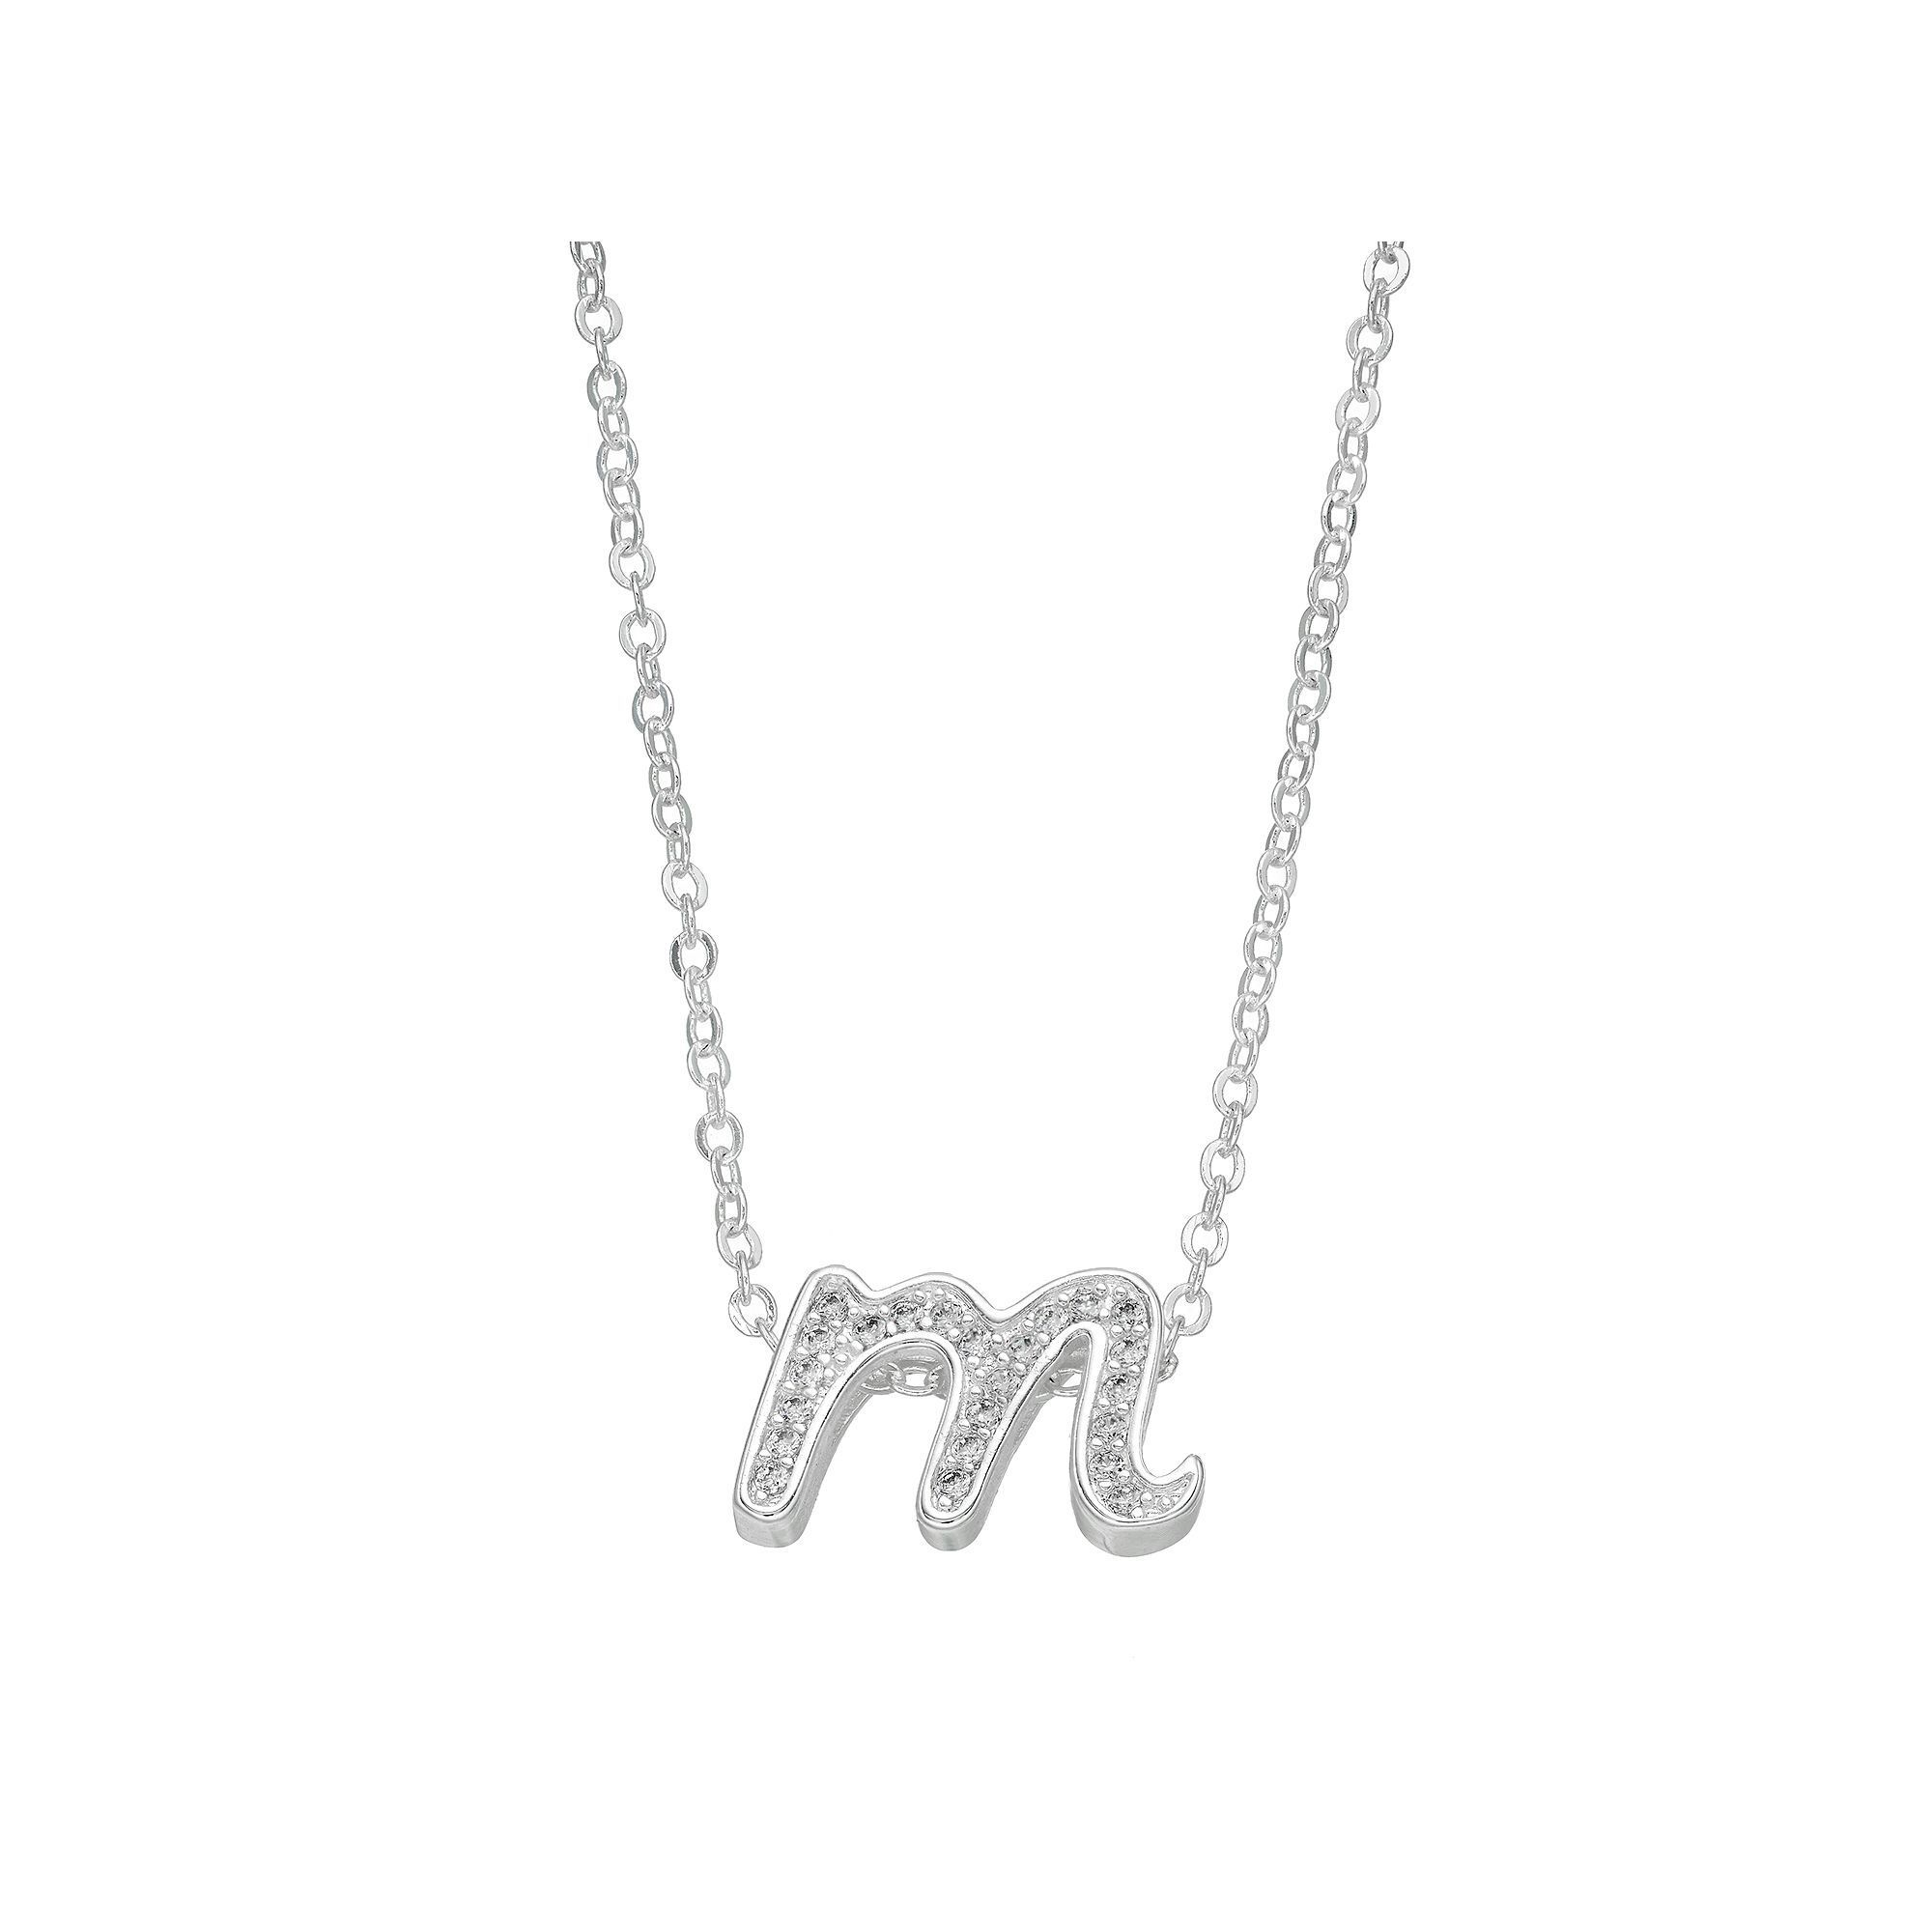 Silver plated cubic zirconia initial pendant necklace initial personalize your look with the sparkling style of this cubic zirconia initial necklace aloadofball Choice Image